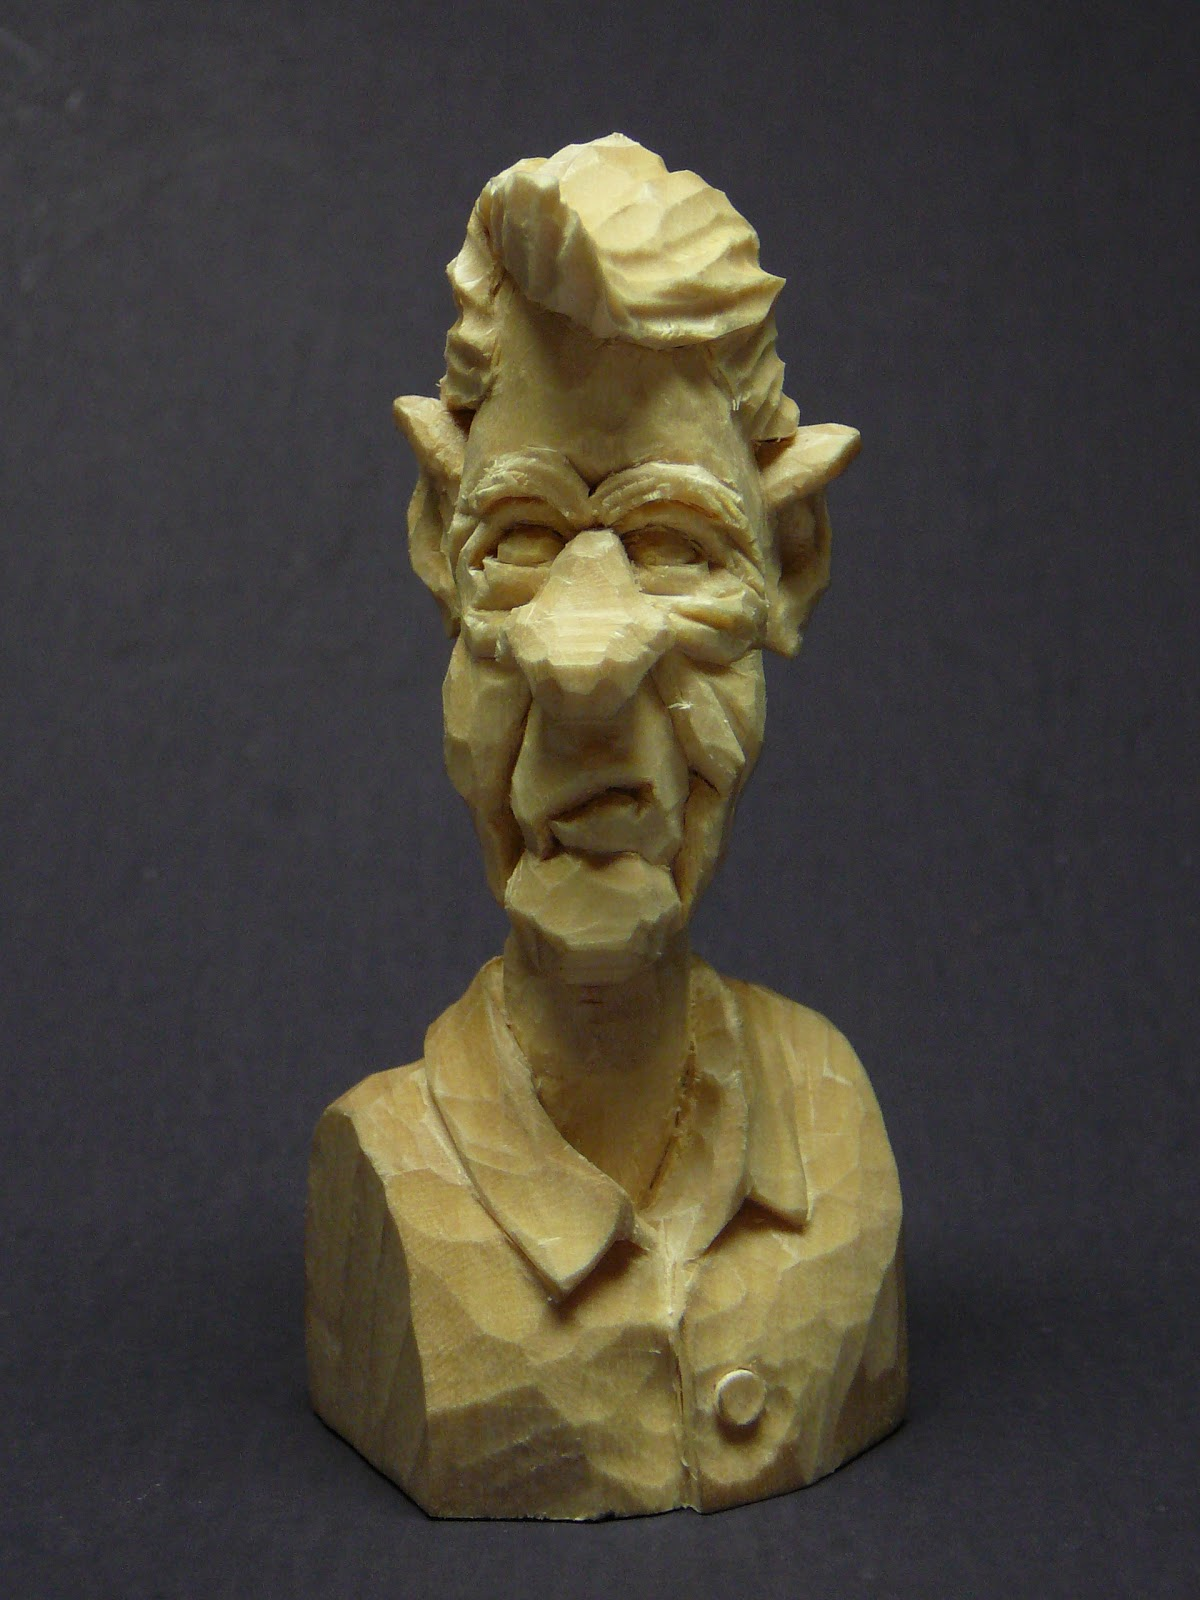 Caricature whittlings building character